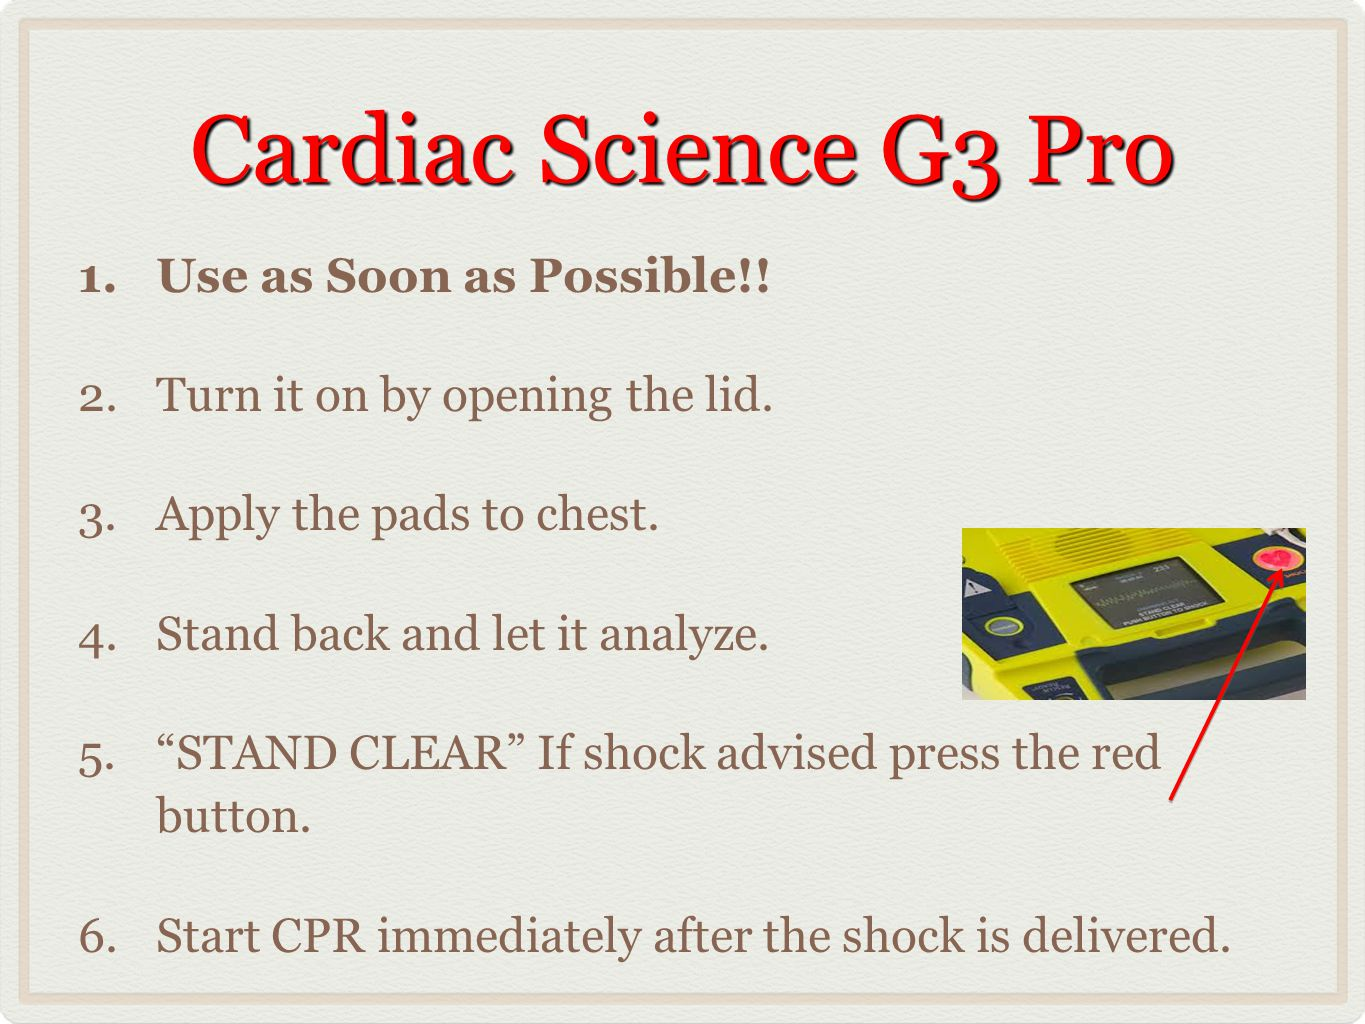 Cardiac Science G3 Pro Use as Soon as Possible!!